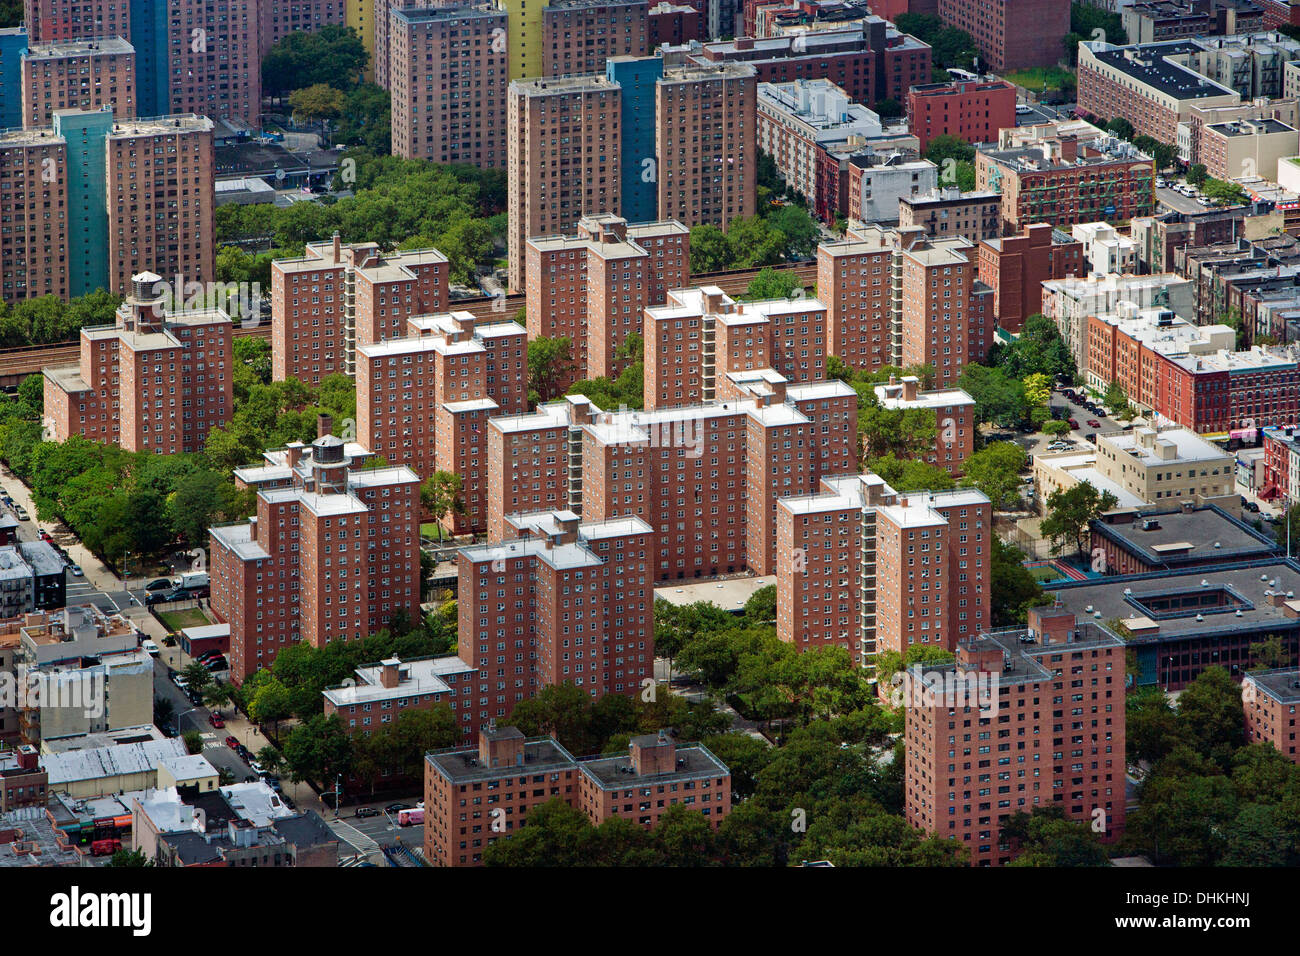 aerial photograph residential high rise apartment buildings Harlem